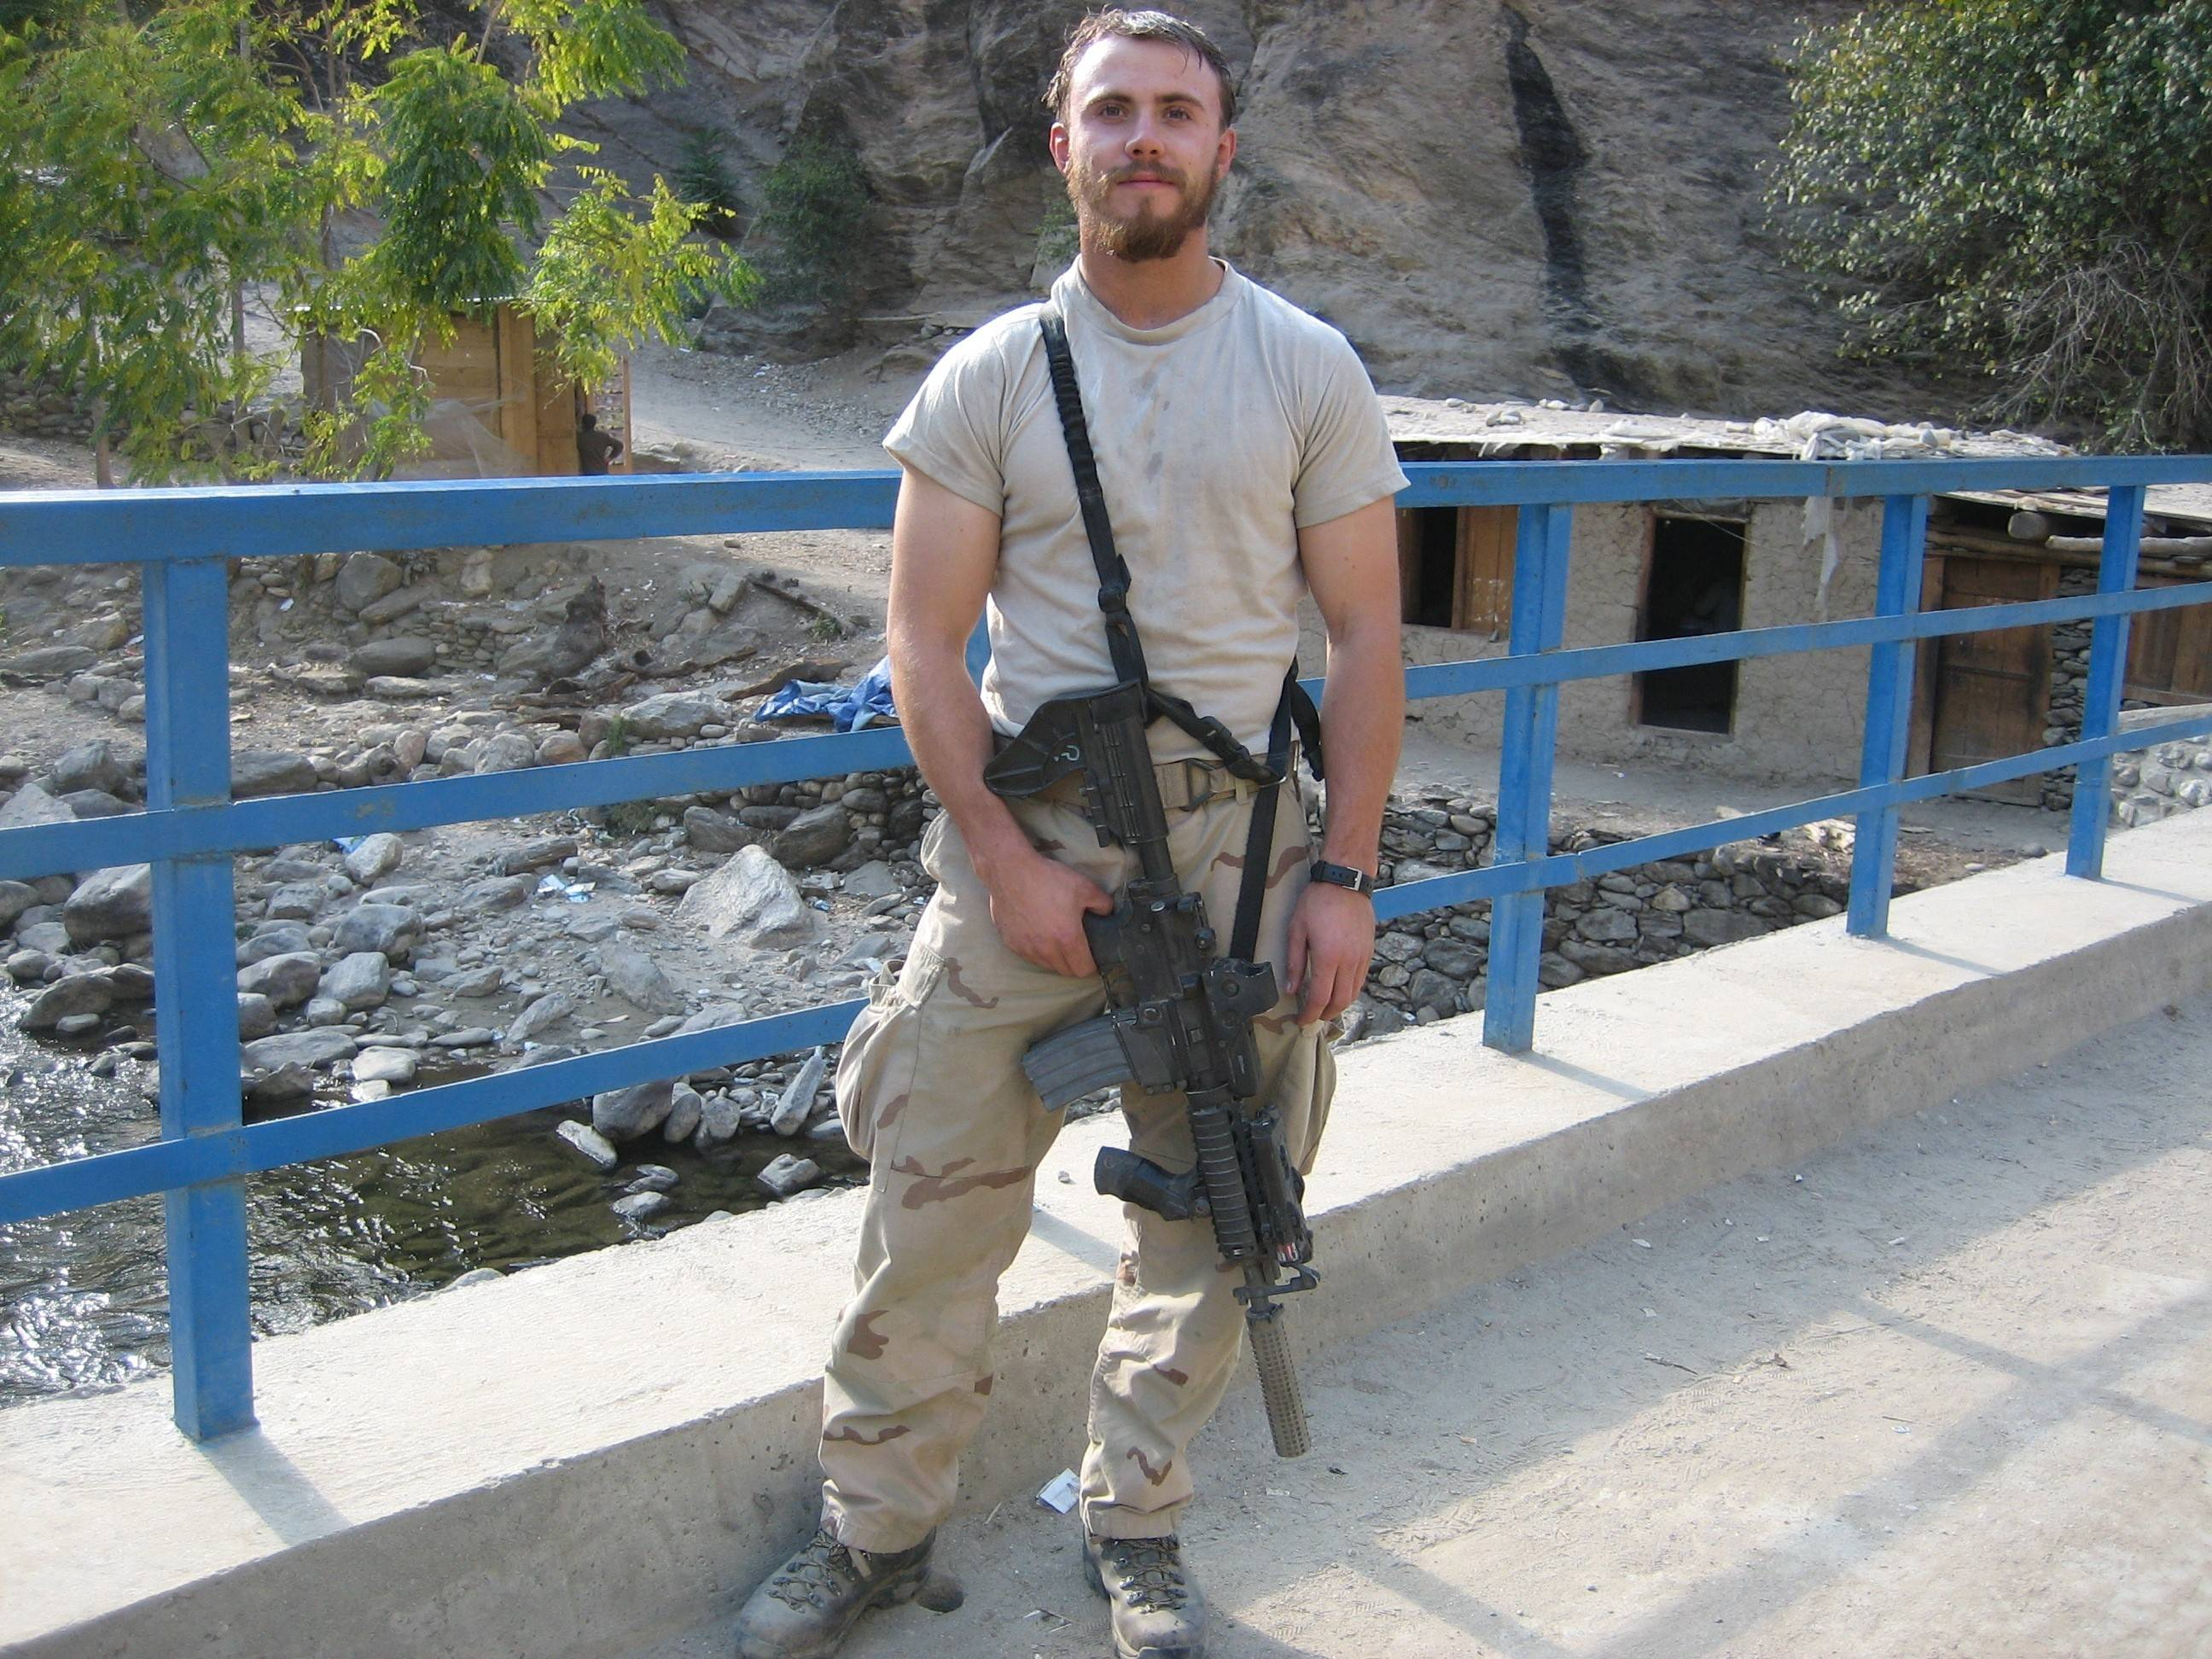 U.S. Army Staff Sgt. Robert Miller grew up in Wheaton and died in Afghanistan. His bravery during his final battle earned him the Medal of Honor, the nation's highest military award.